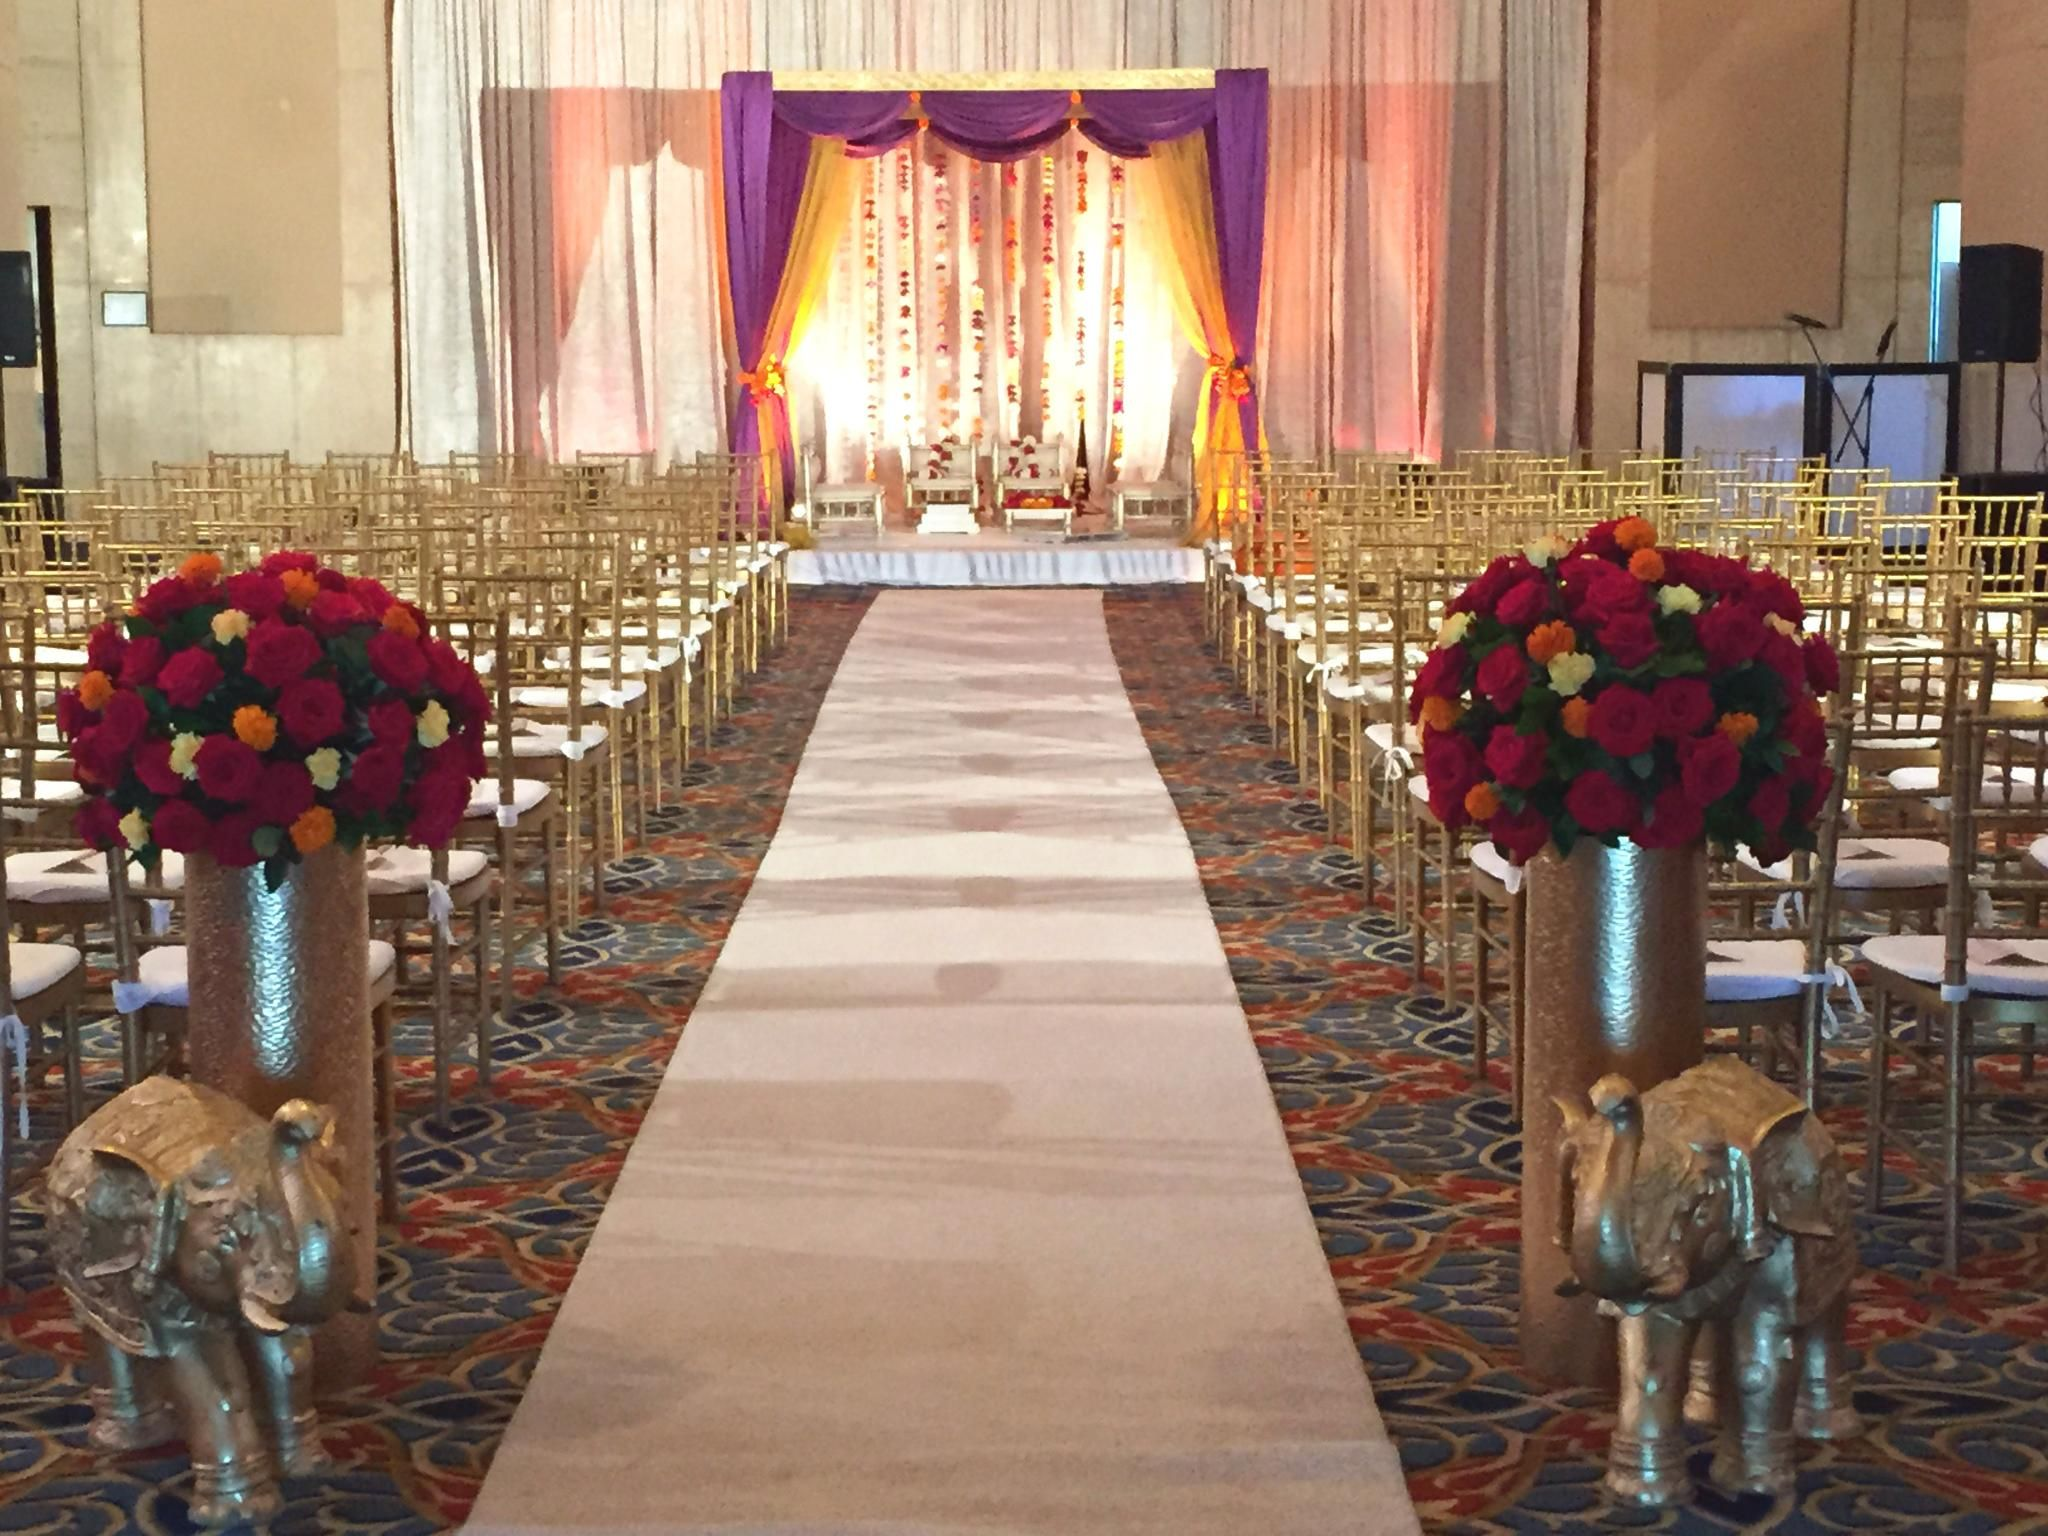 At The William F Bolger Center We Understand Diffe Events Require Solutions And Each Event Should Reflect Individual Desires Styles